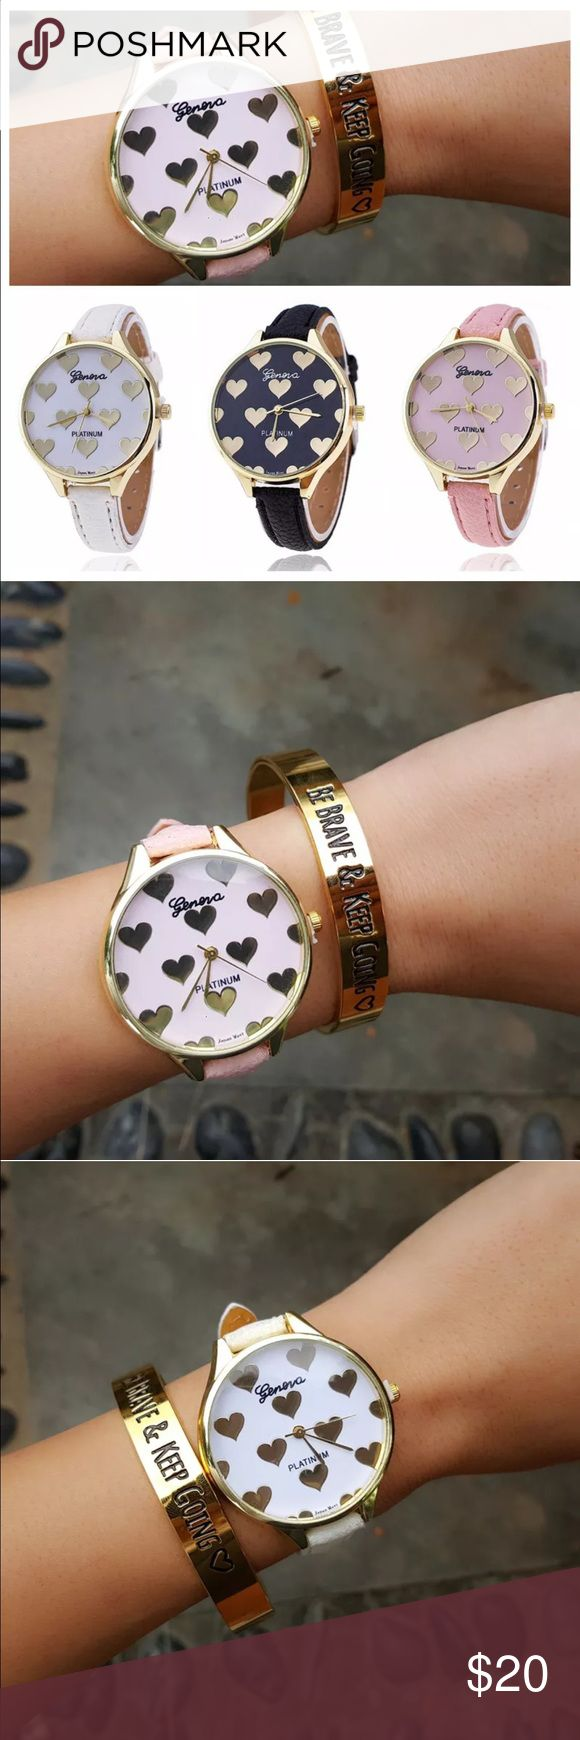 heart leather arm candy watch. Pink, black, white Available in pink, black and white Accessories Watches